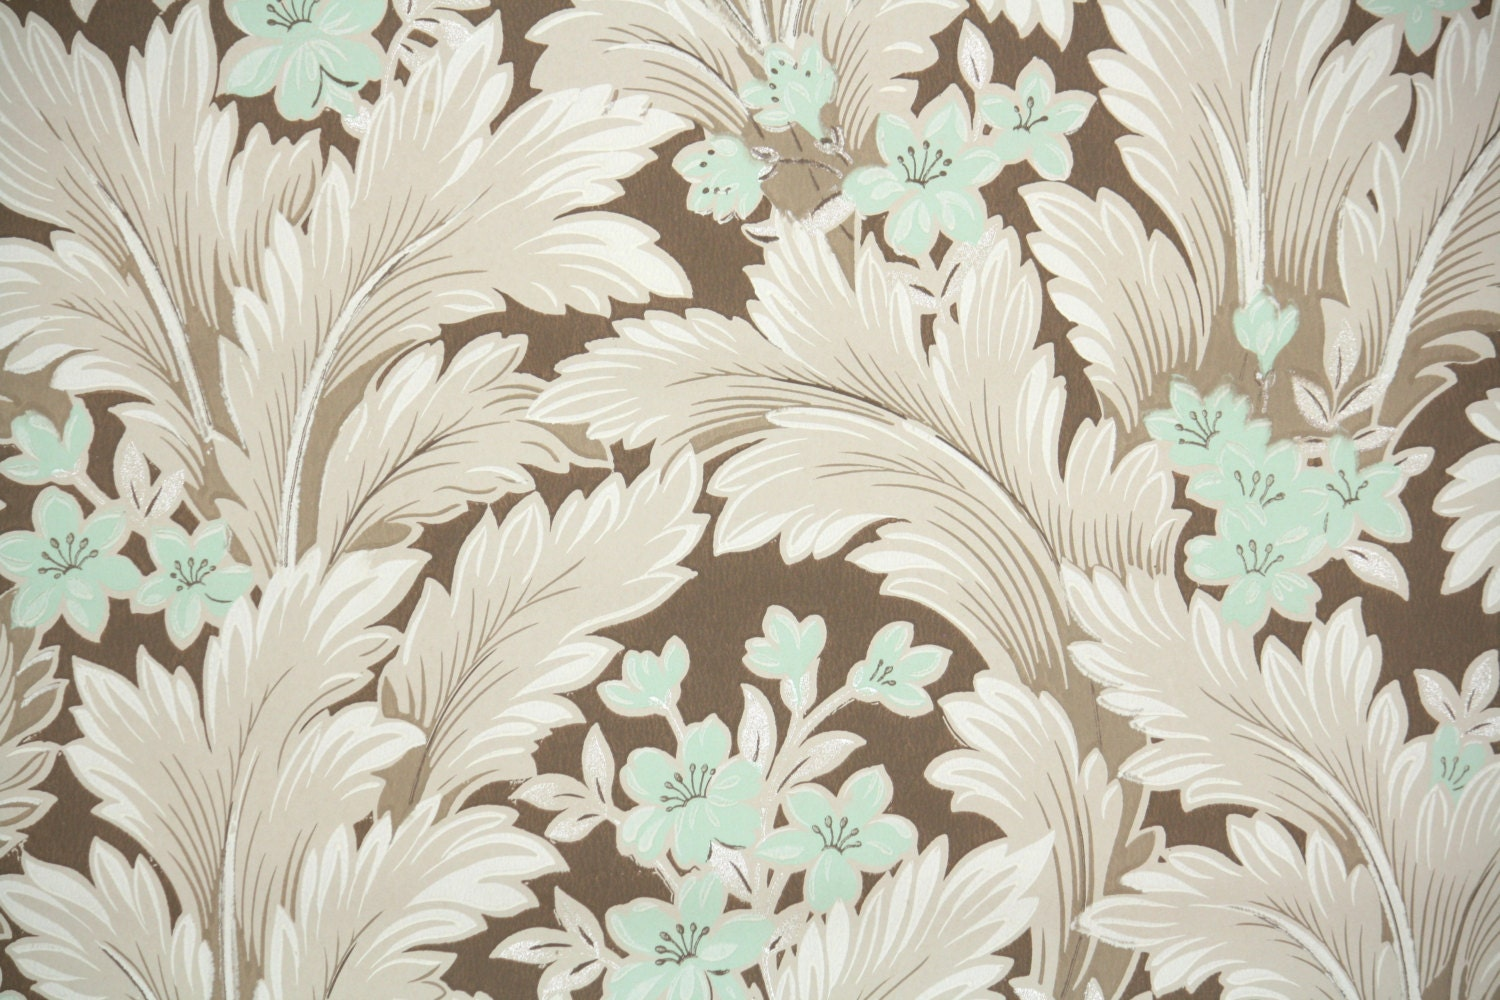 1950s vintage wallpaper by the yard mint green flowers and